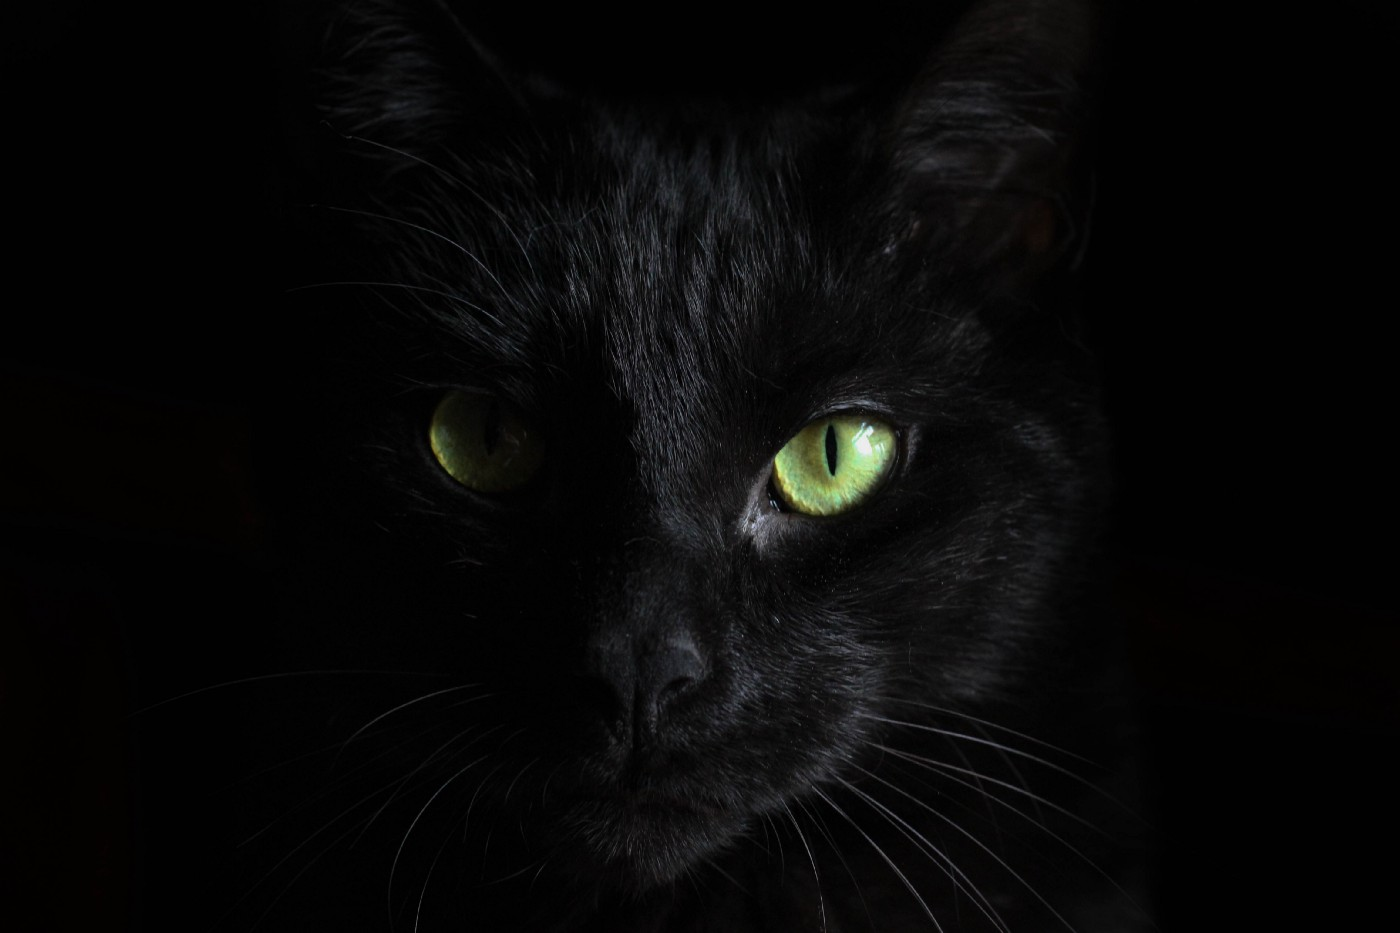 Face of a black cat